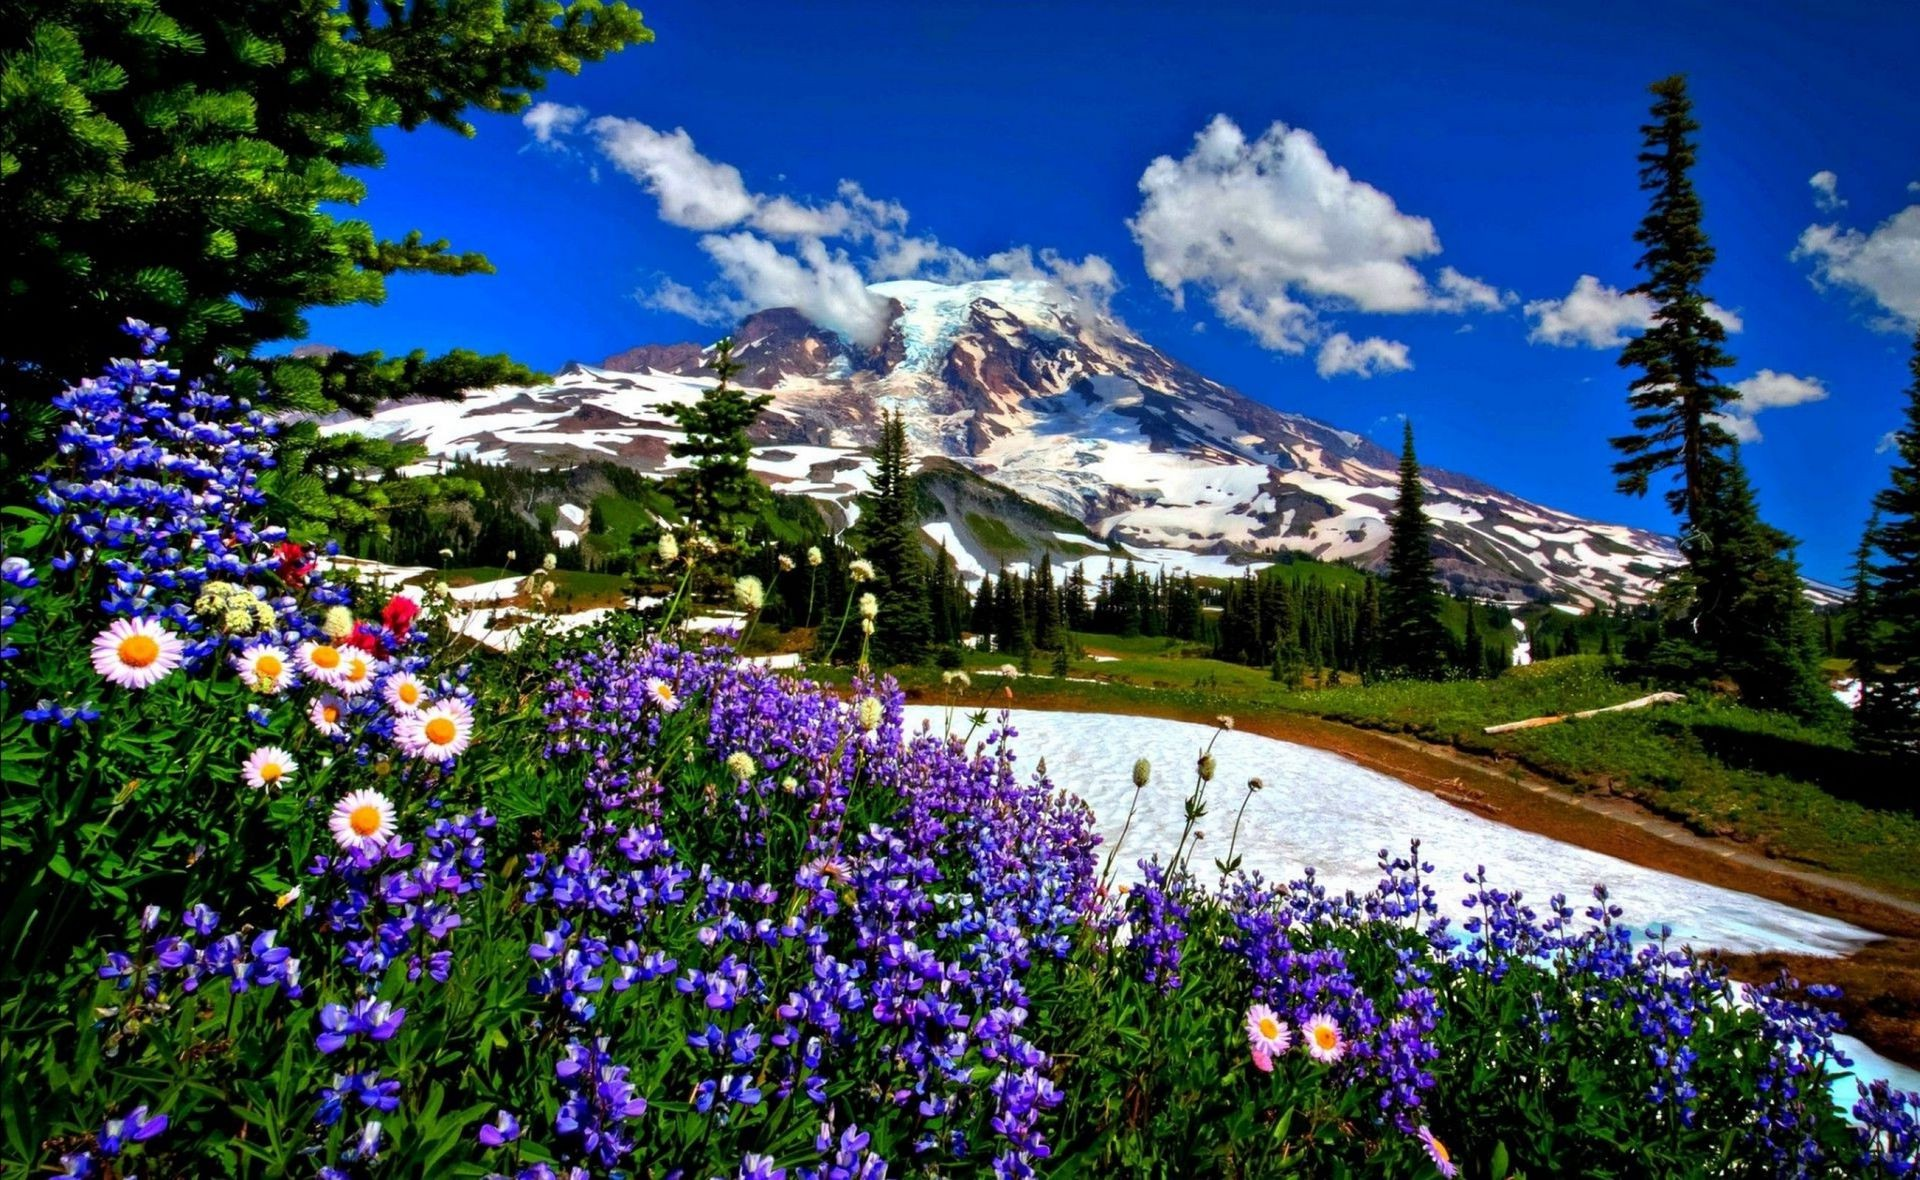 mountains flower nature landscape outdoors summer scenic hayfield tree flora season mountain grass color travel wood park rural sight